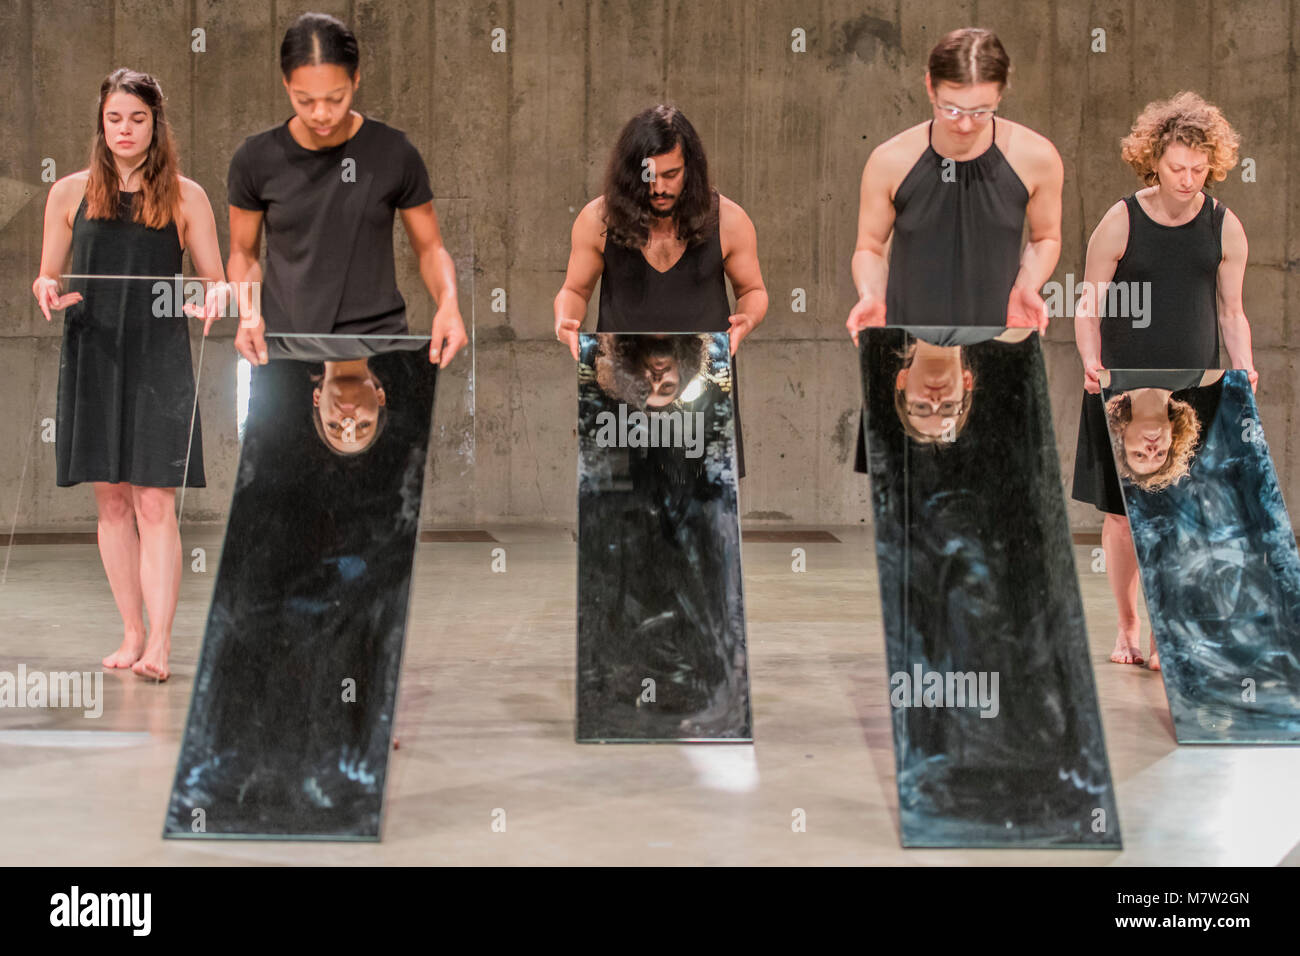 London, UK. 13th March, 2018. Mirror Piece II, an early work in which a group of performers make choreographed movements Stock Photo